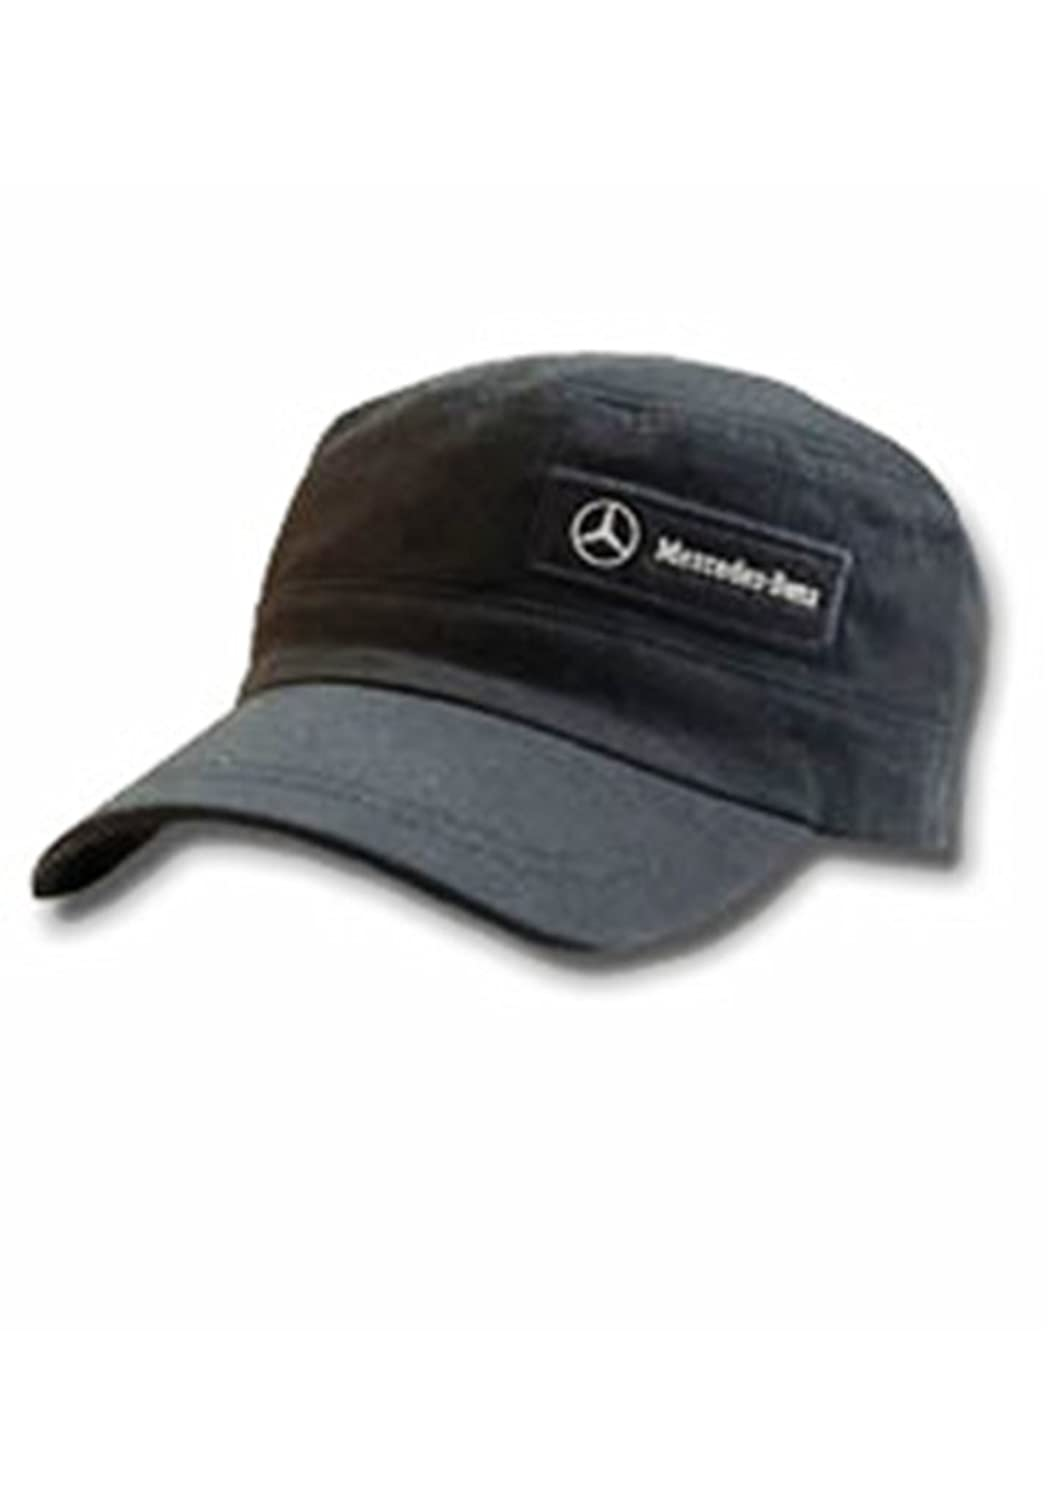 Genuine mercedes benz military cap hat black apparel for Mercedes benz hat amazon